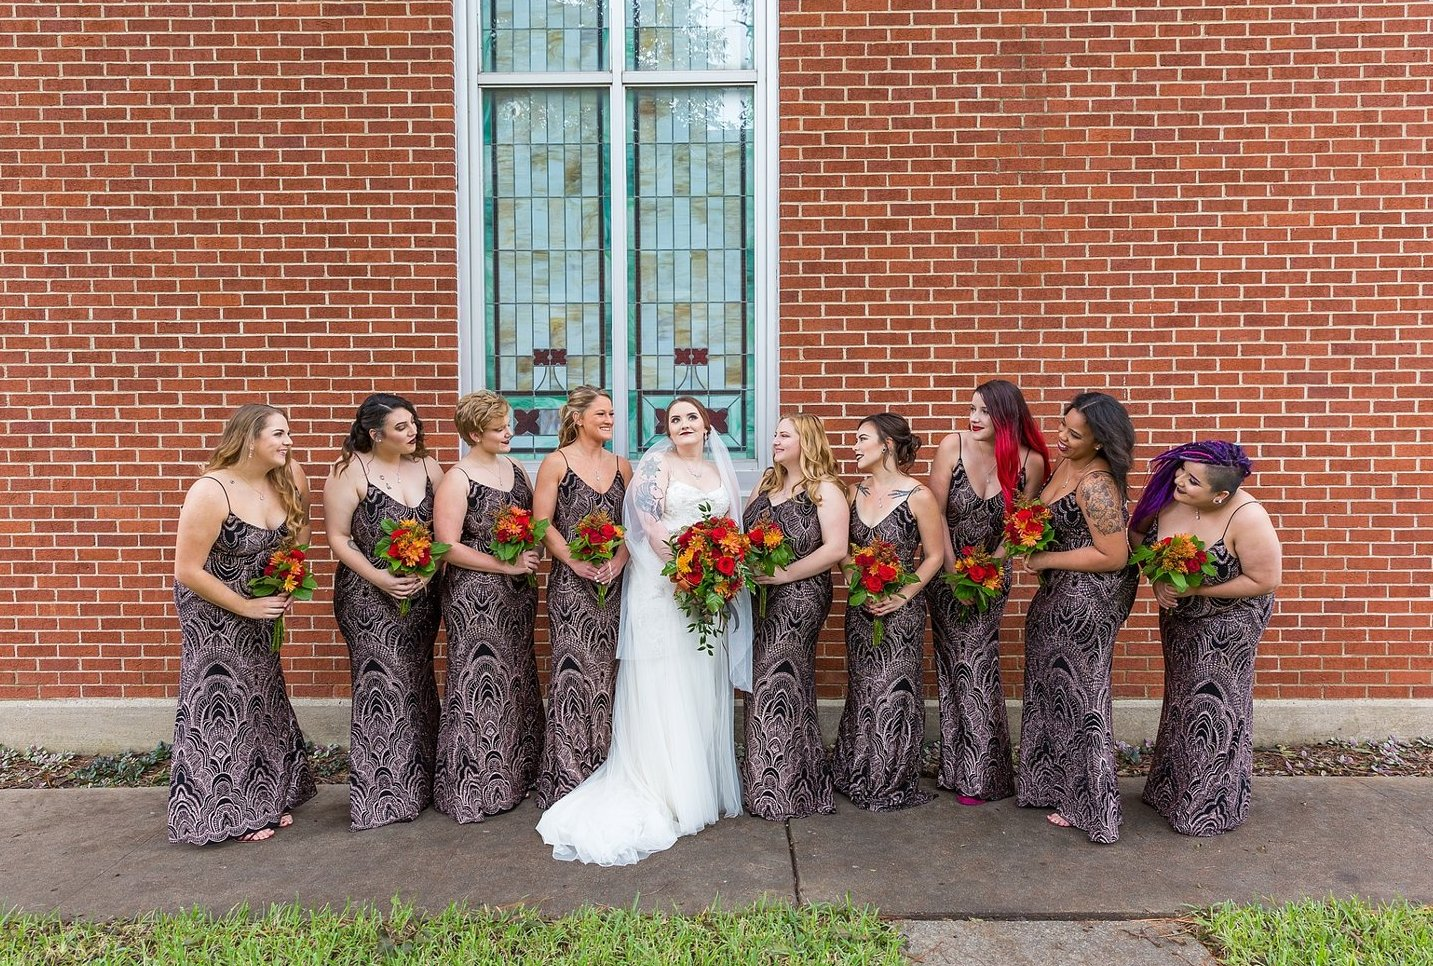 Fall-Gothic-Wedding-Waco-DFW_0005c.jpg